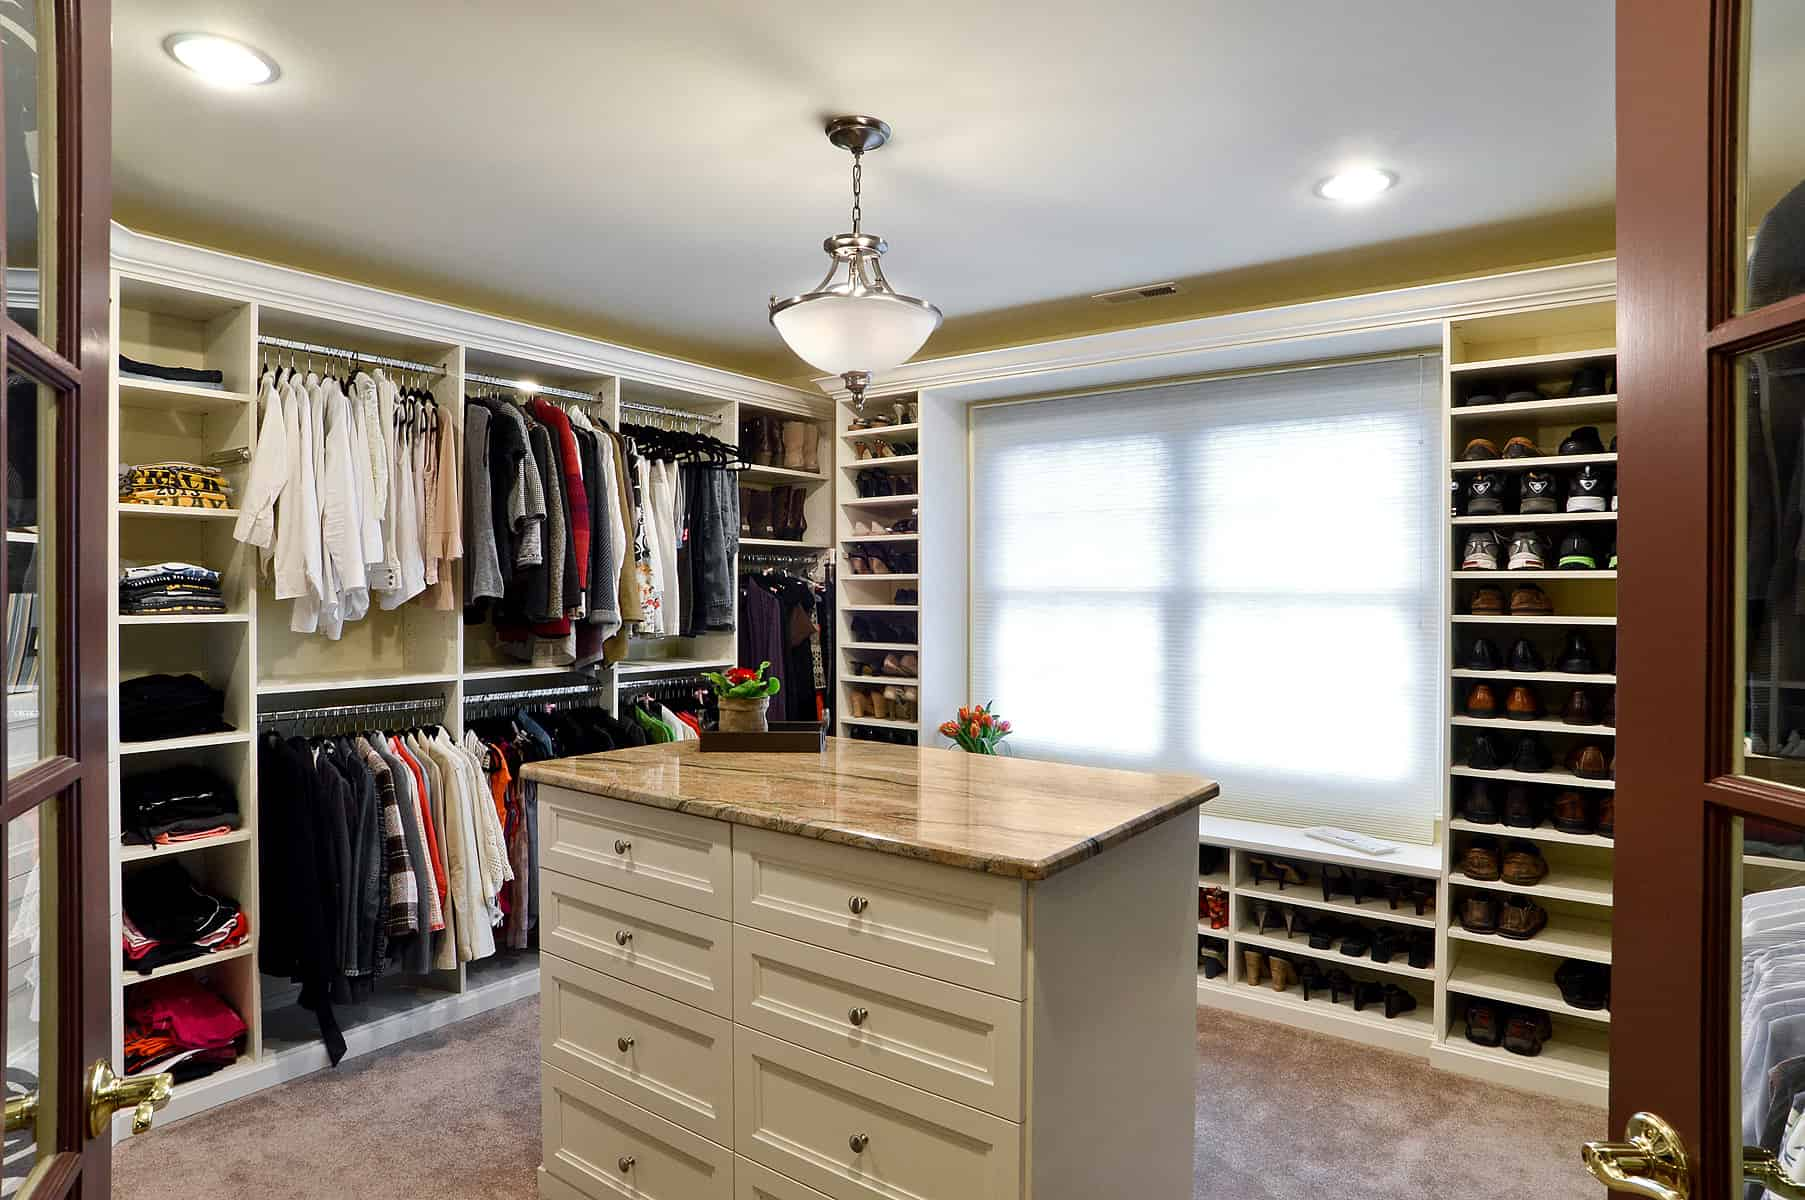 Large custom walk-in closet with dresser island and loads of clothing storage by Closet Works.